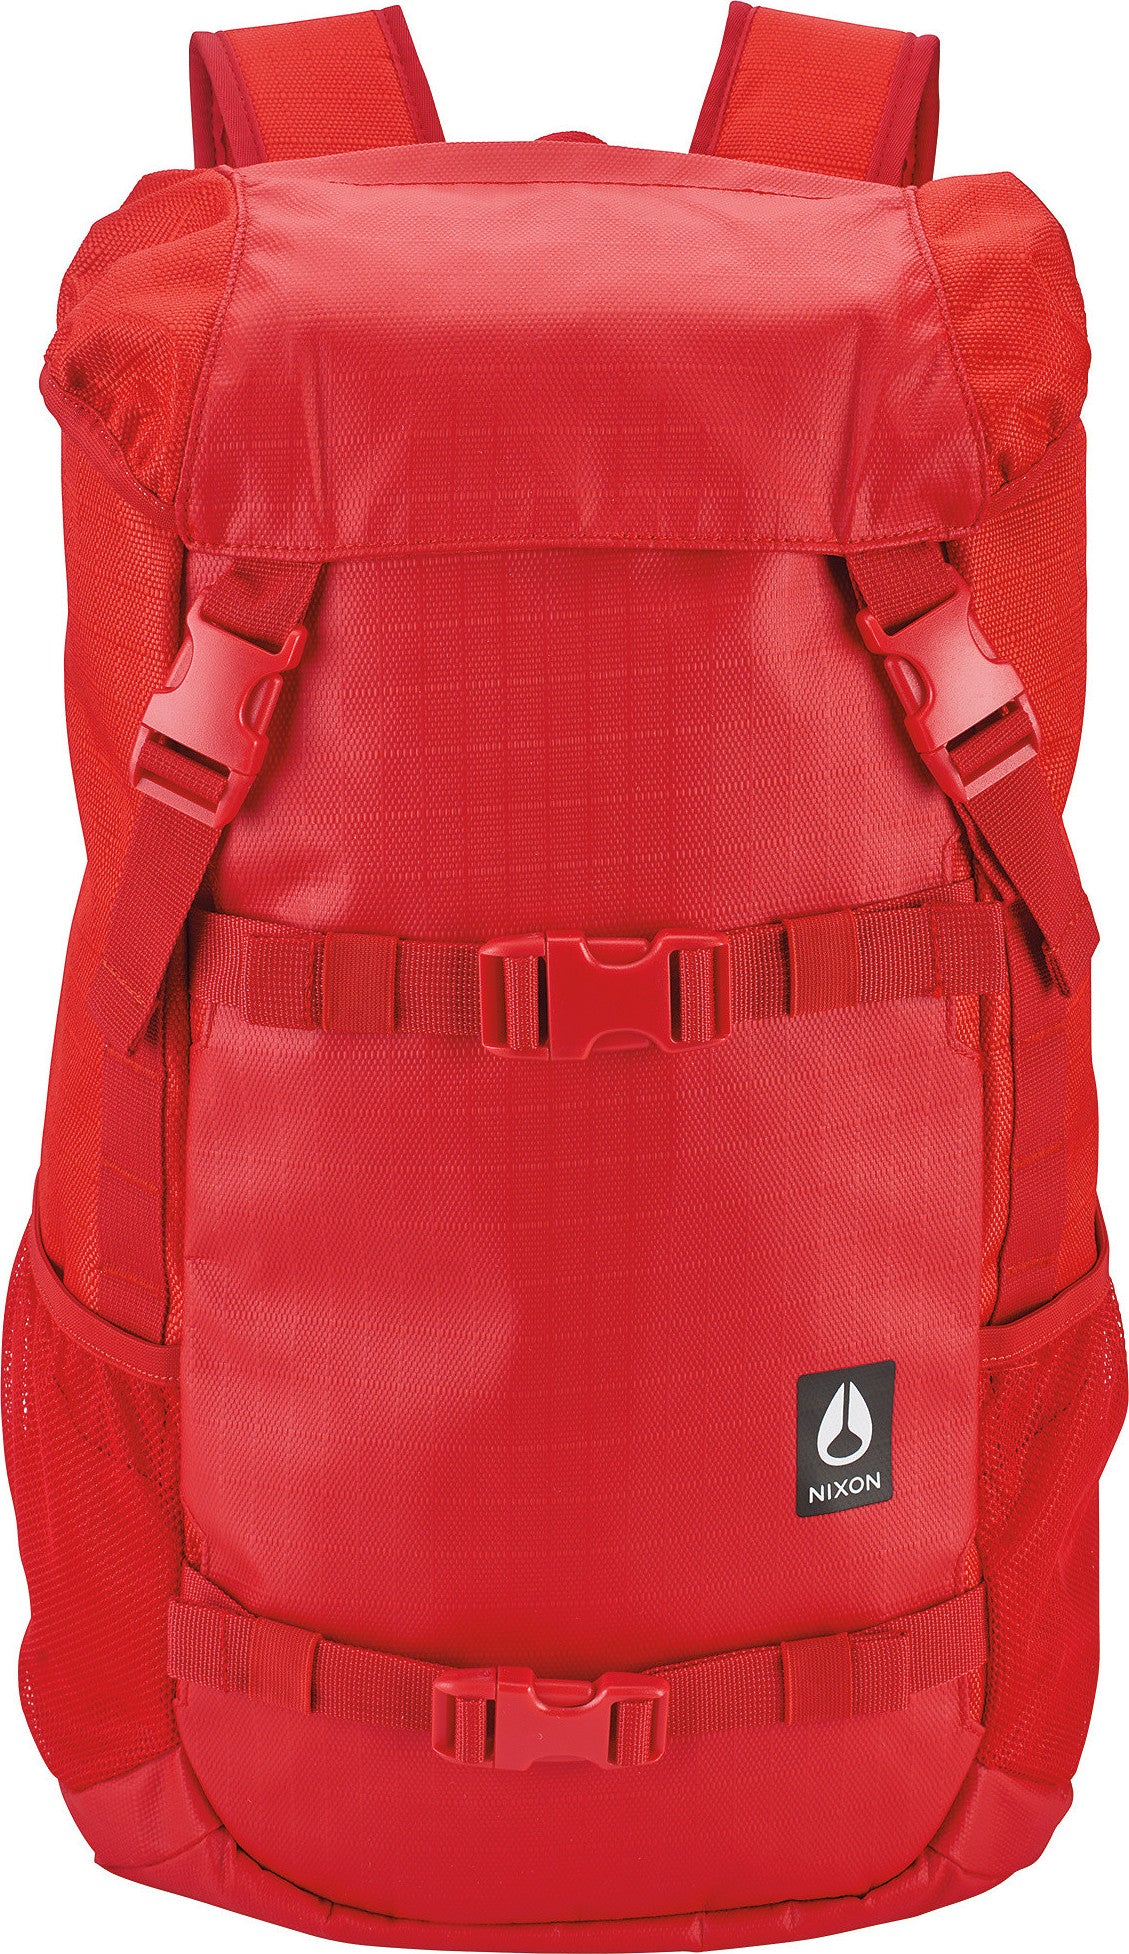 4e273ae93 Nixon Landlock Backpack Iii - Men's | The Last Hunt